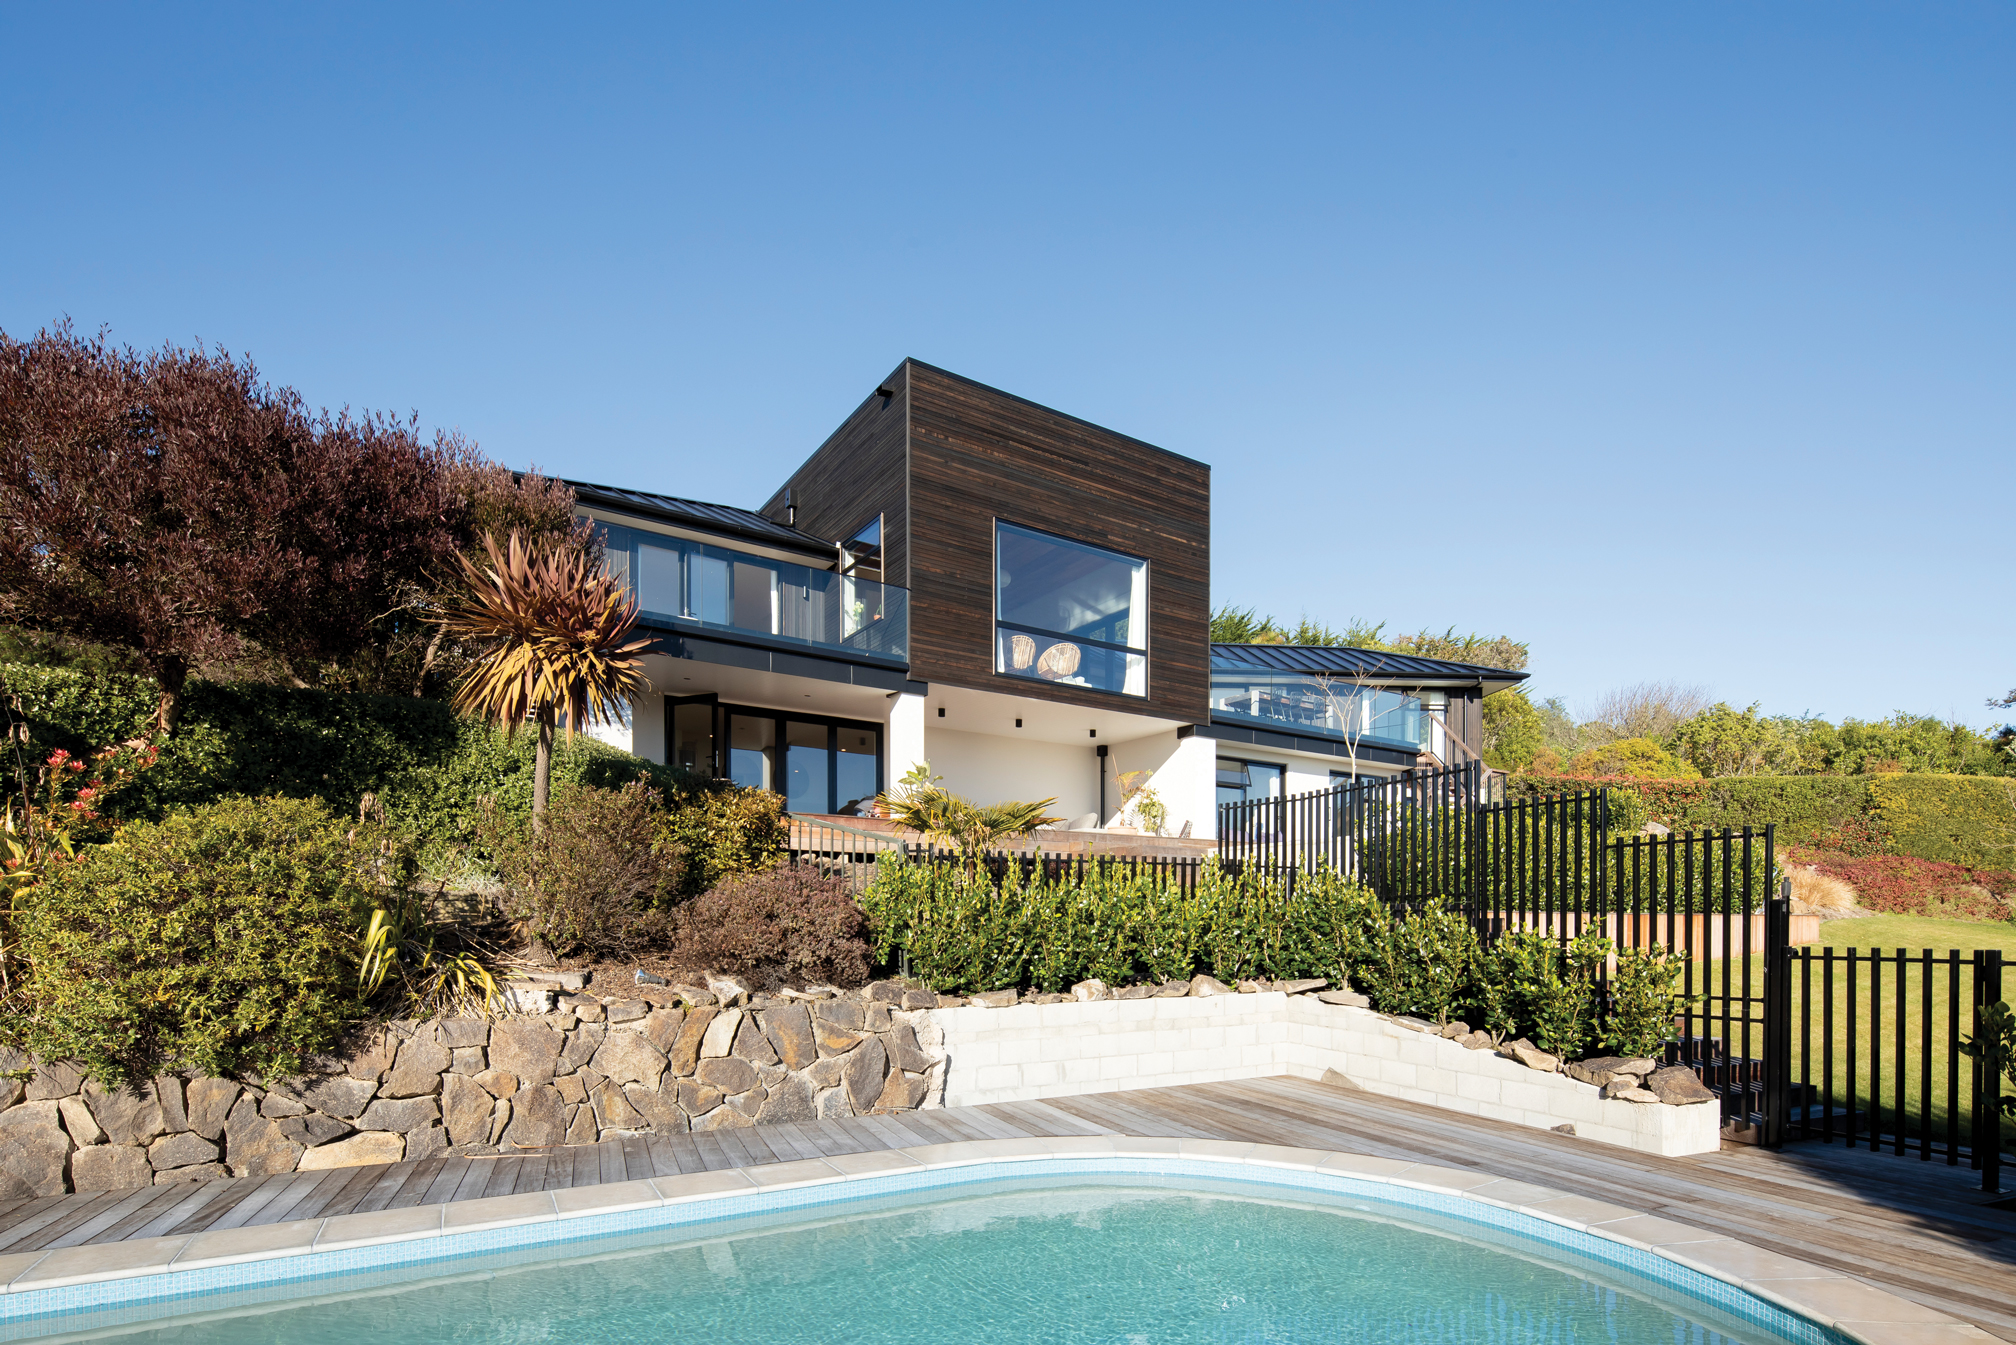 Exterior  This hillside 1960s home looks as good as new after its extensive renovation by Brad Richards Building.